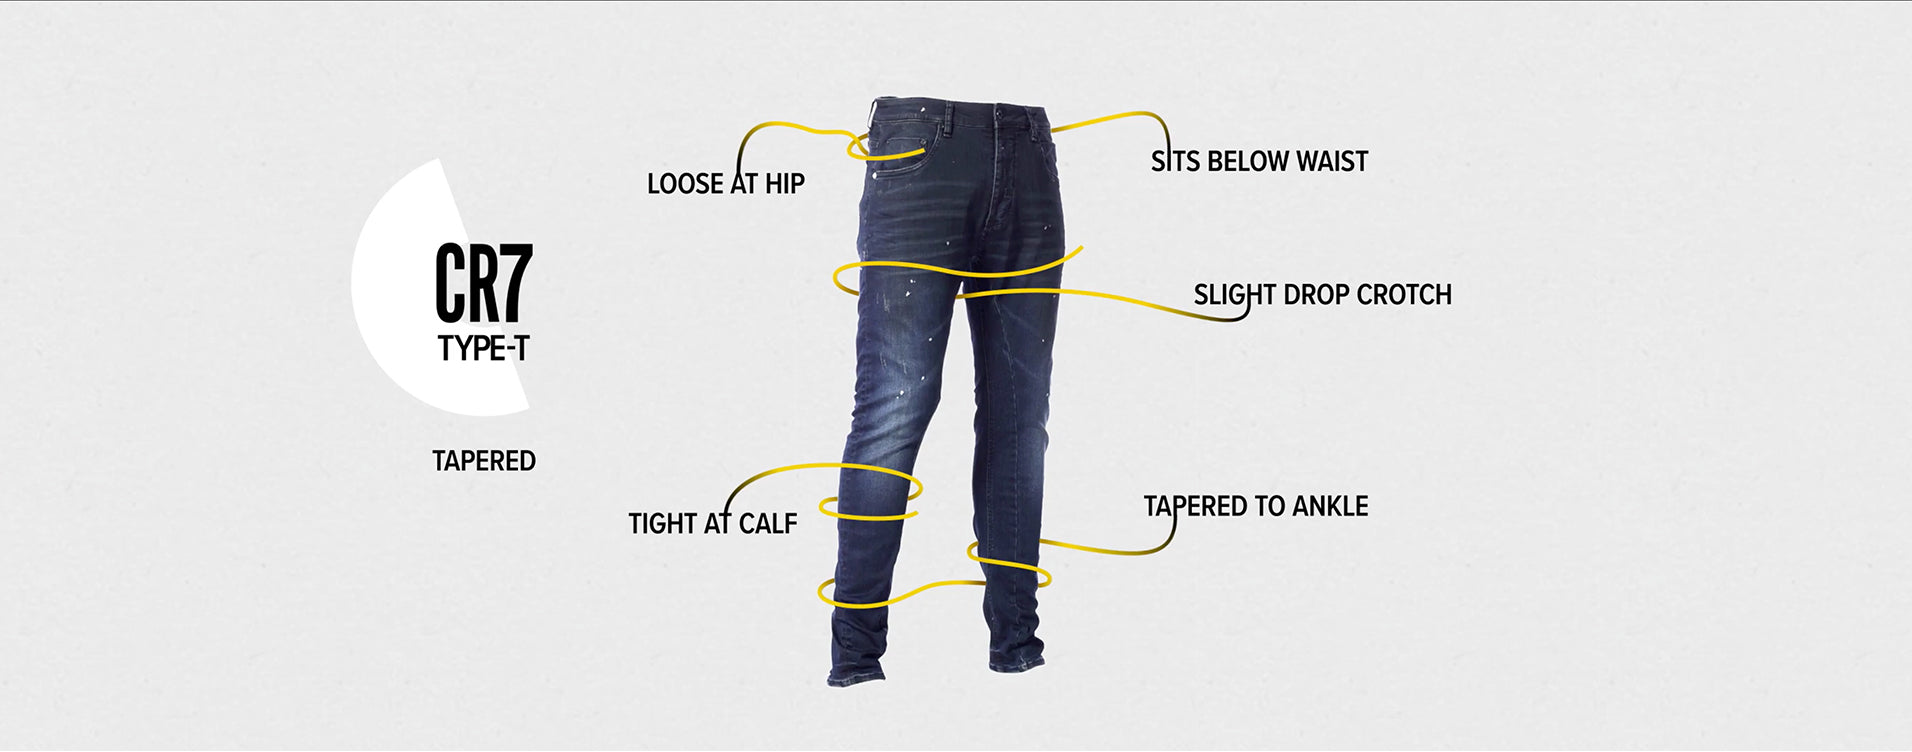 TYPE-T TAPERED JEAN - ARCTIC fit